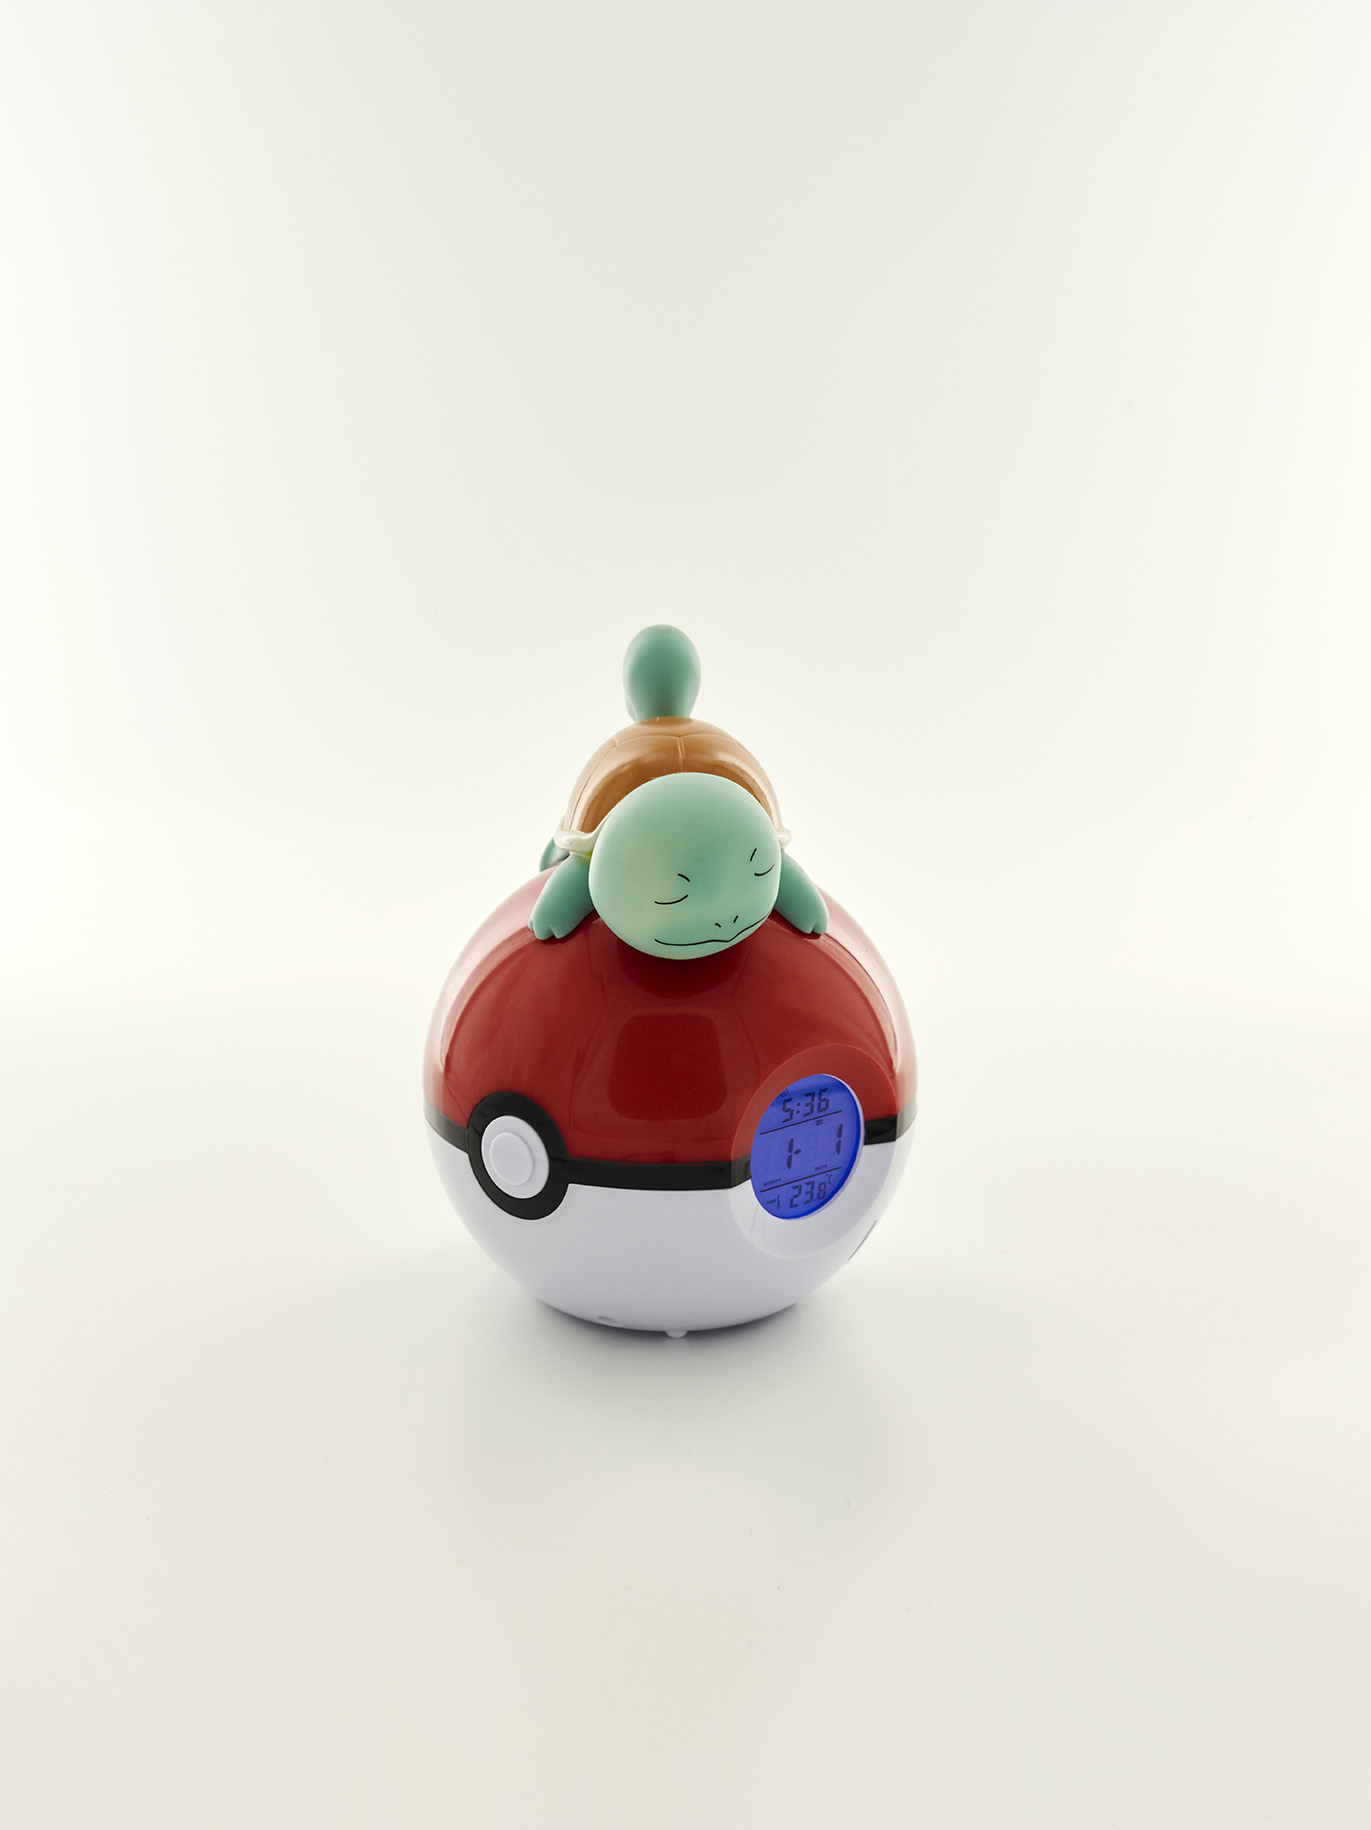 Pokémon Squirtle Light-up 3D figure FM Alarm Clock 2